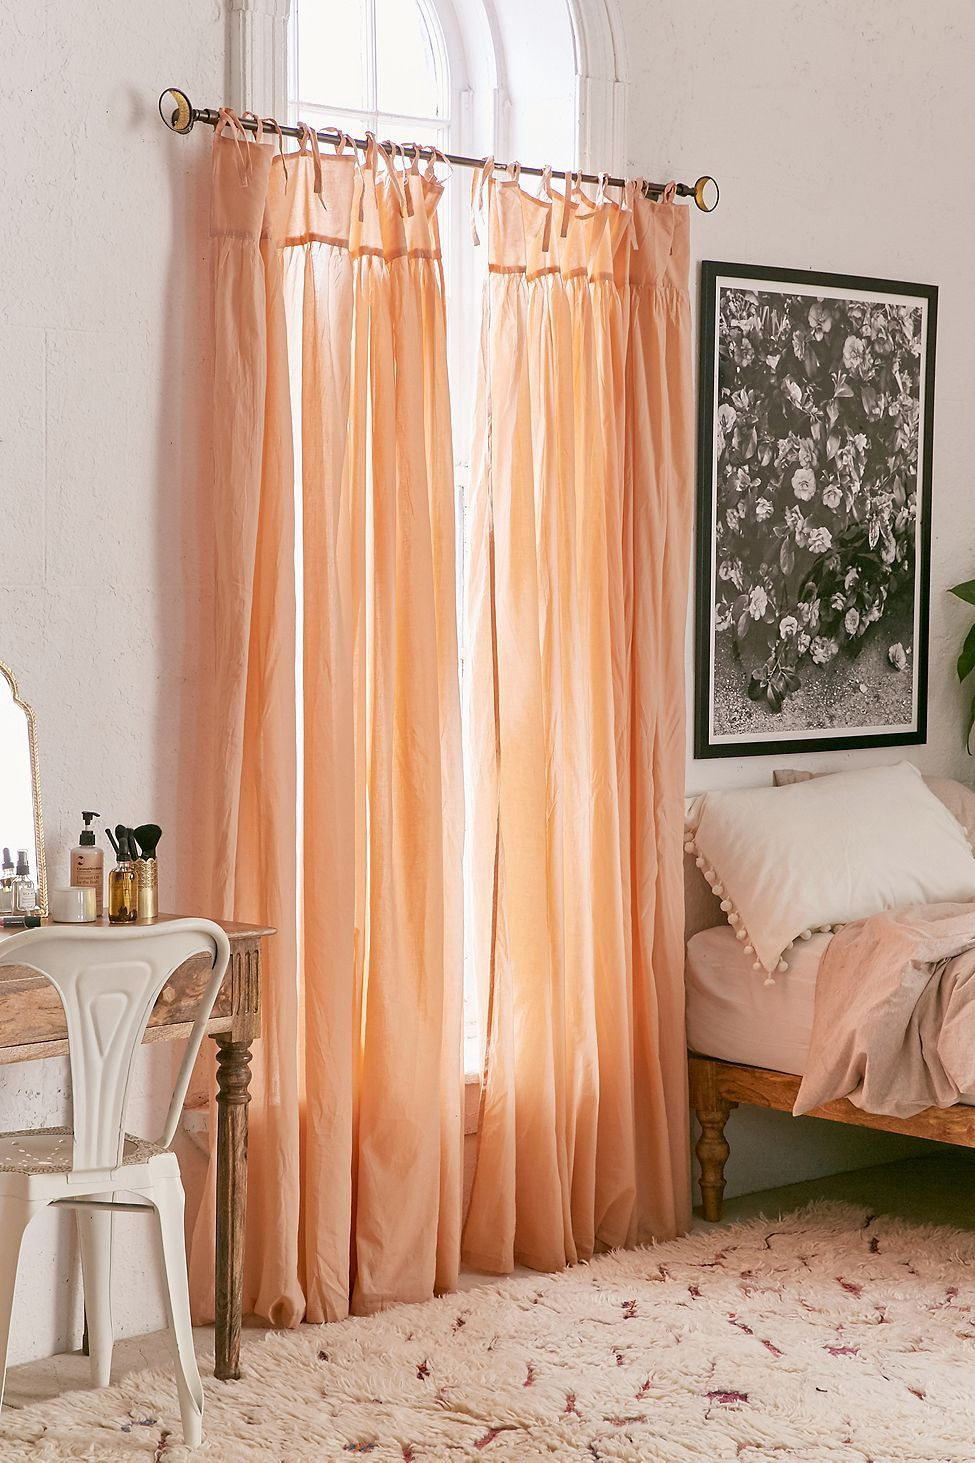 Plum Amp Bow Gathered Voile Curtain By Urban Outfitters In